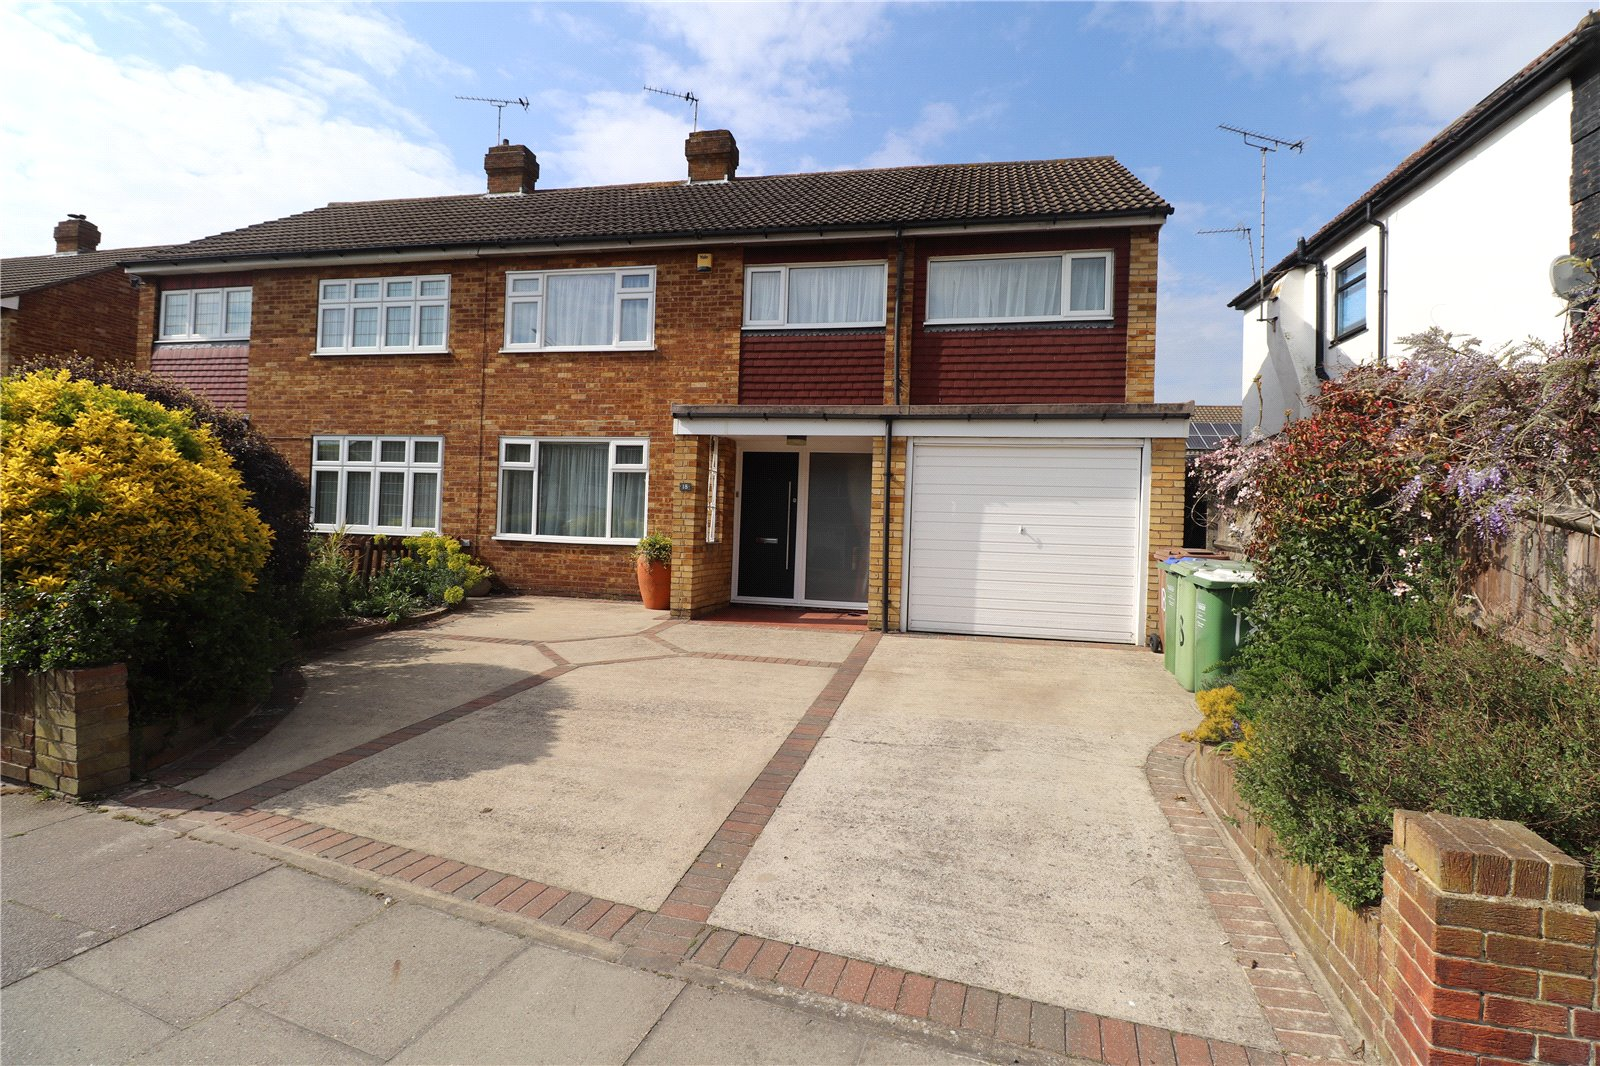 Erith Road, Upper Belvedere, Kent, DA17